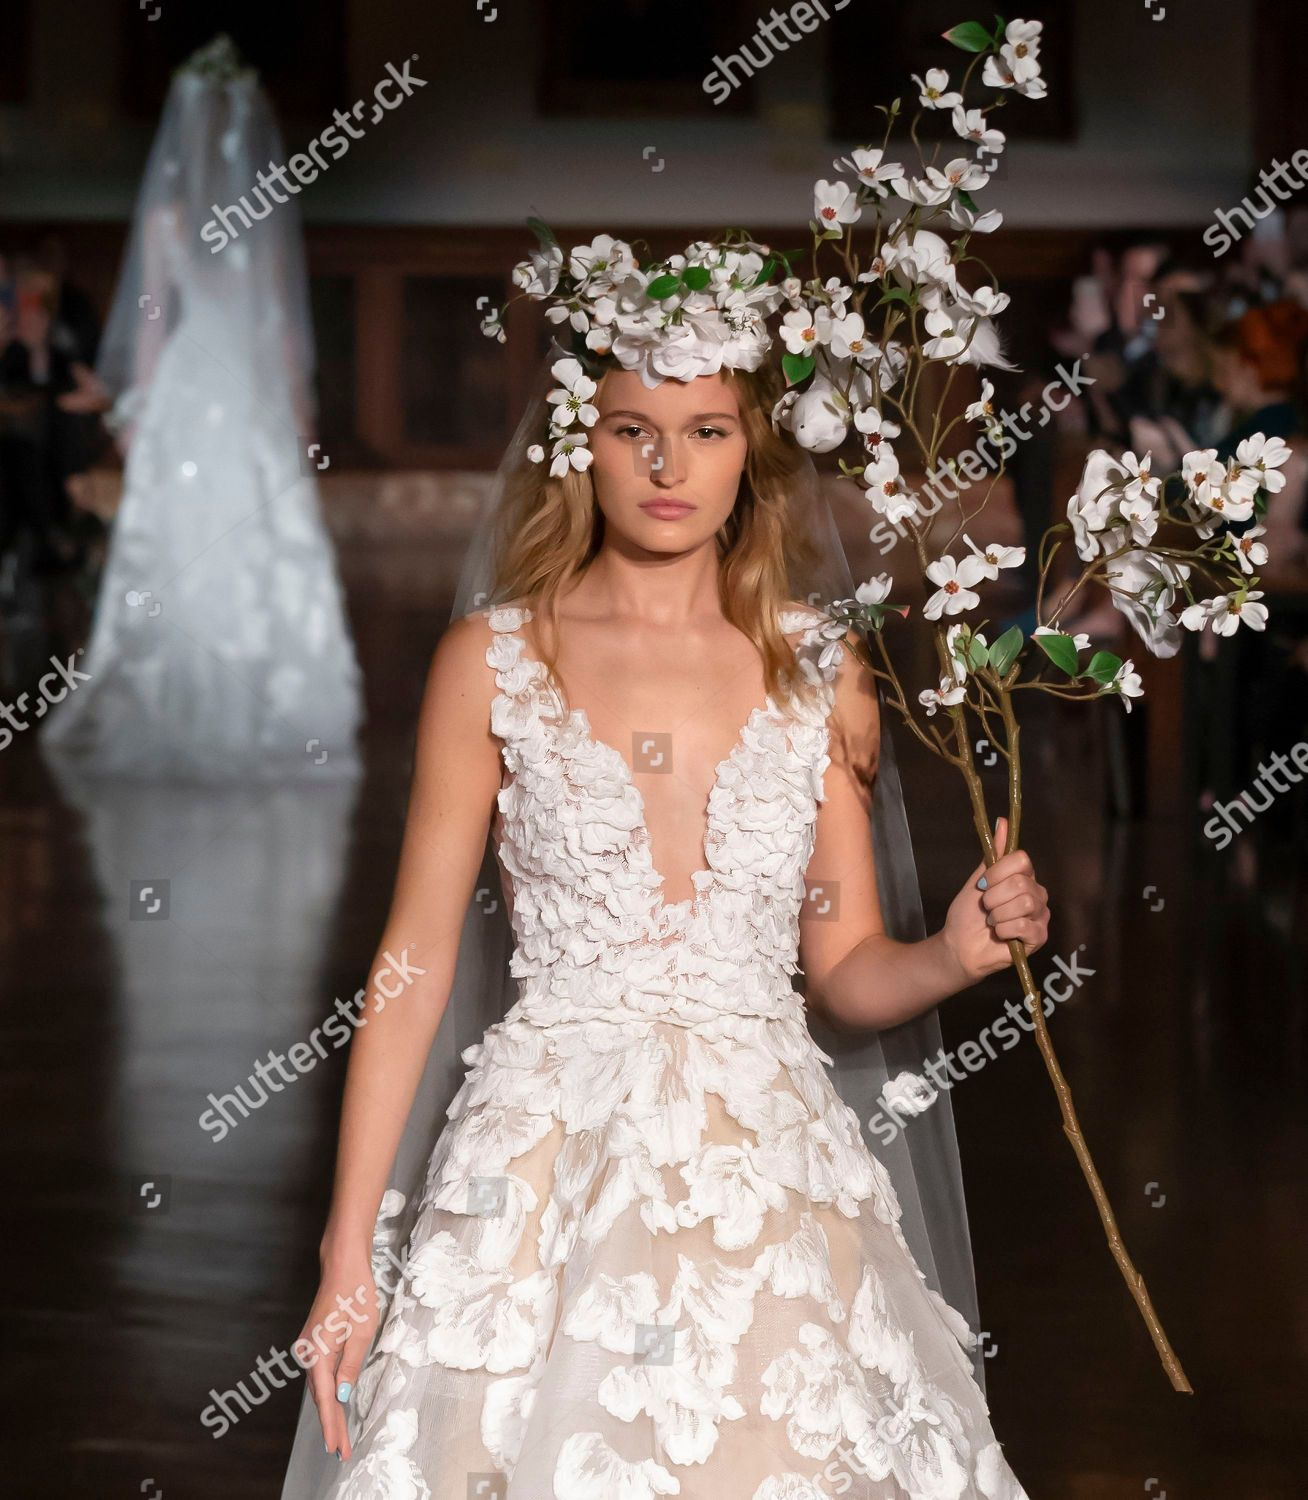 0a7b02e74b26 Reem Acra Bridal show, Runway, Spring 2019, New York Bridal Week, USA Stock  Image by Ovidiu Hrubaru for editorial use, Apr 12, 2018